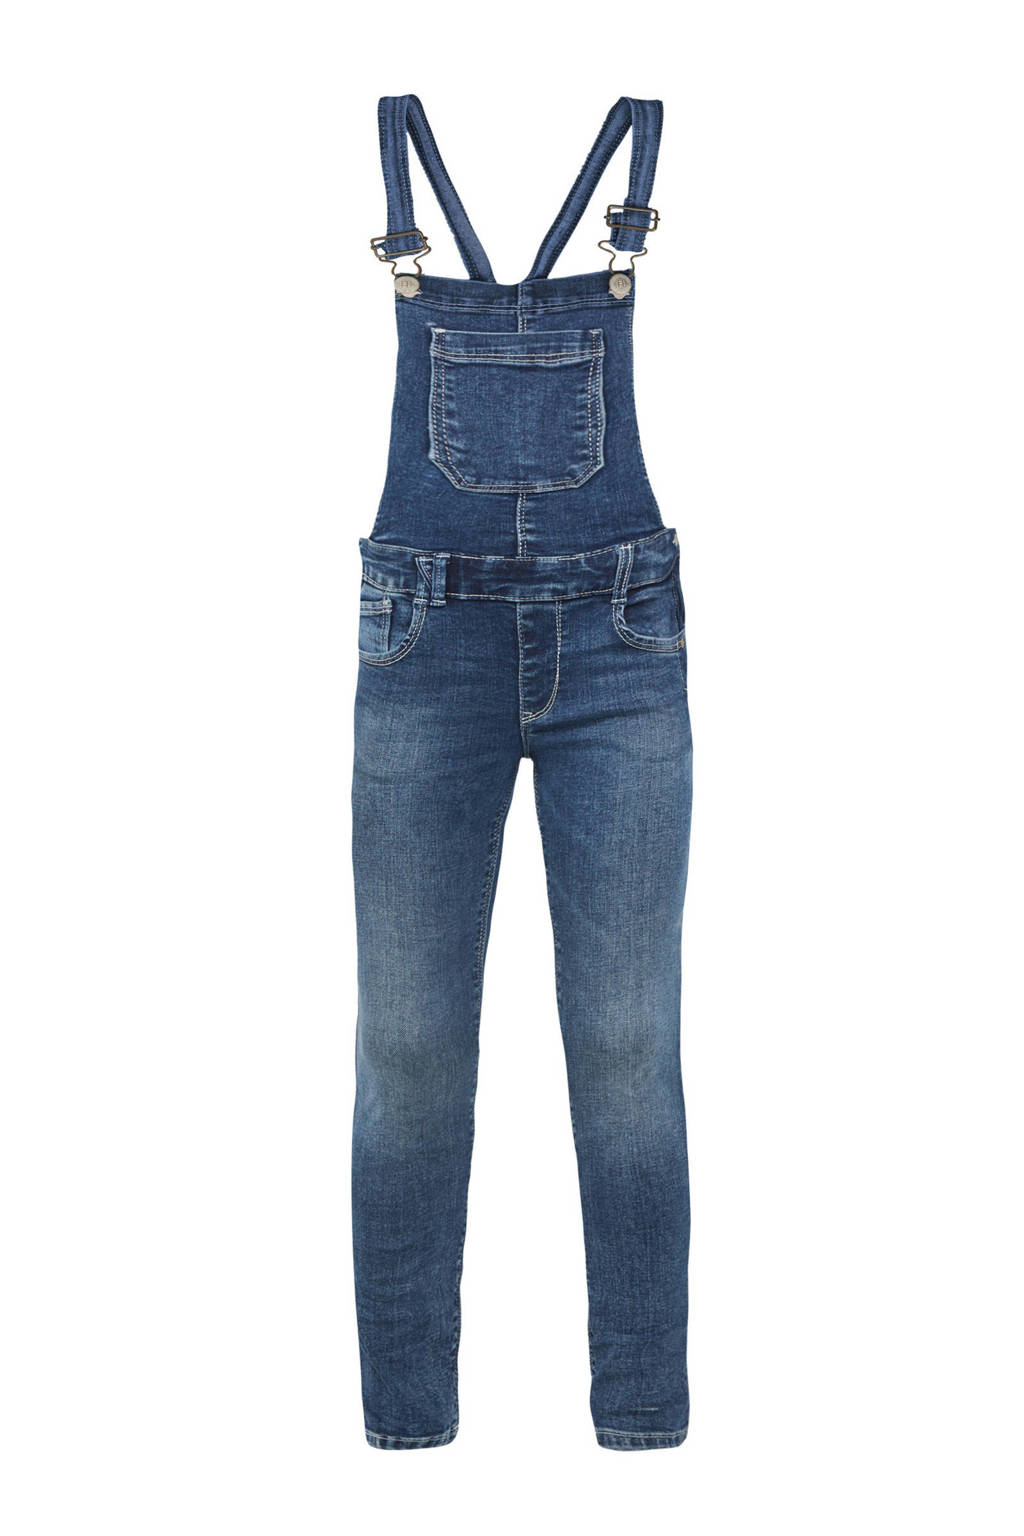 WE Fashion Blue Ridge super skinny fit tuinbroek stonewashed, Blauw